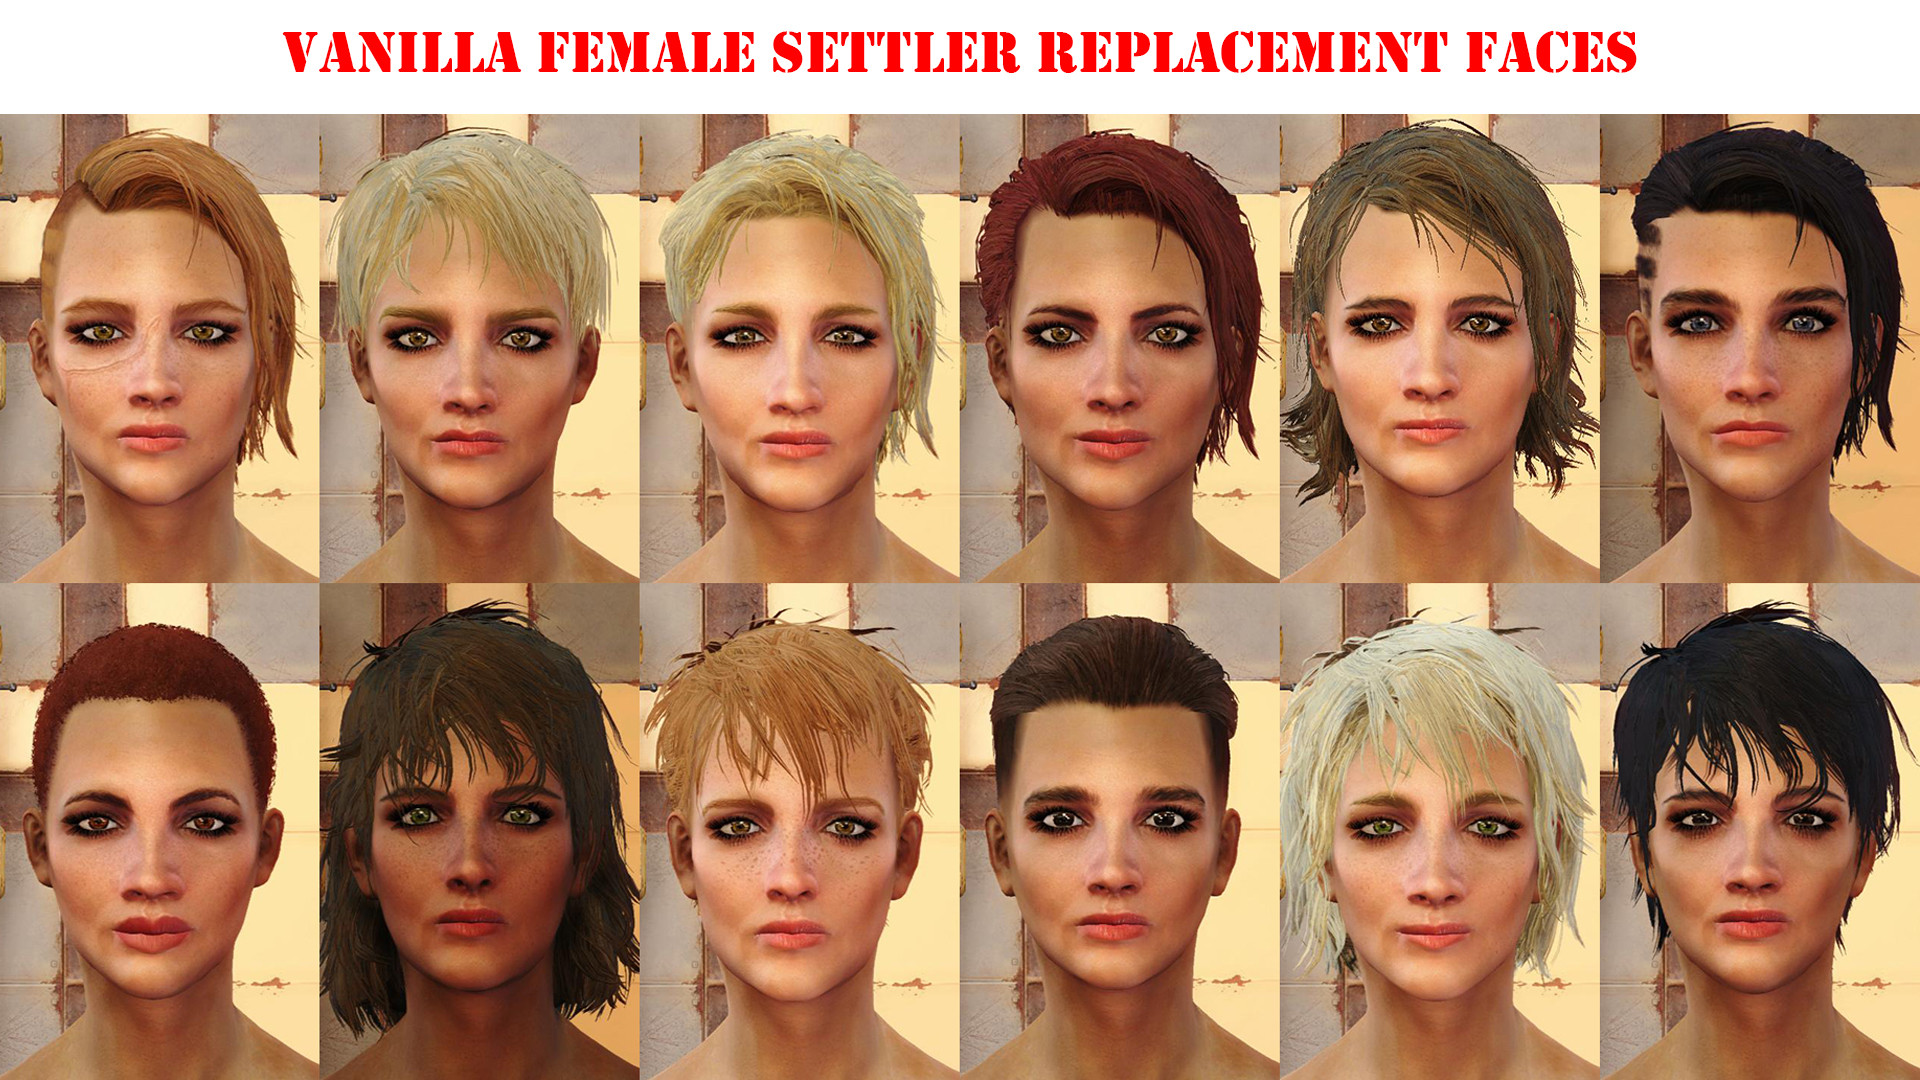 Fallout 4 Female Hairstyles  Vanilla Settler Replacements Fallout 4 Mod